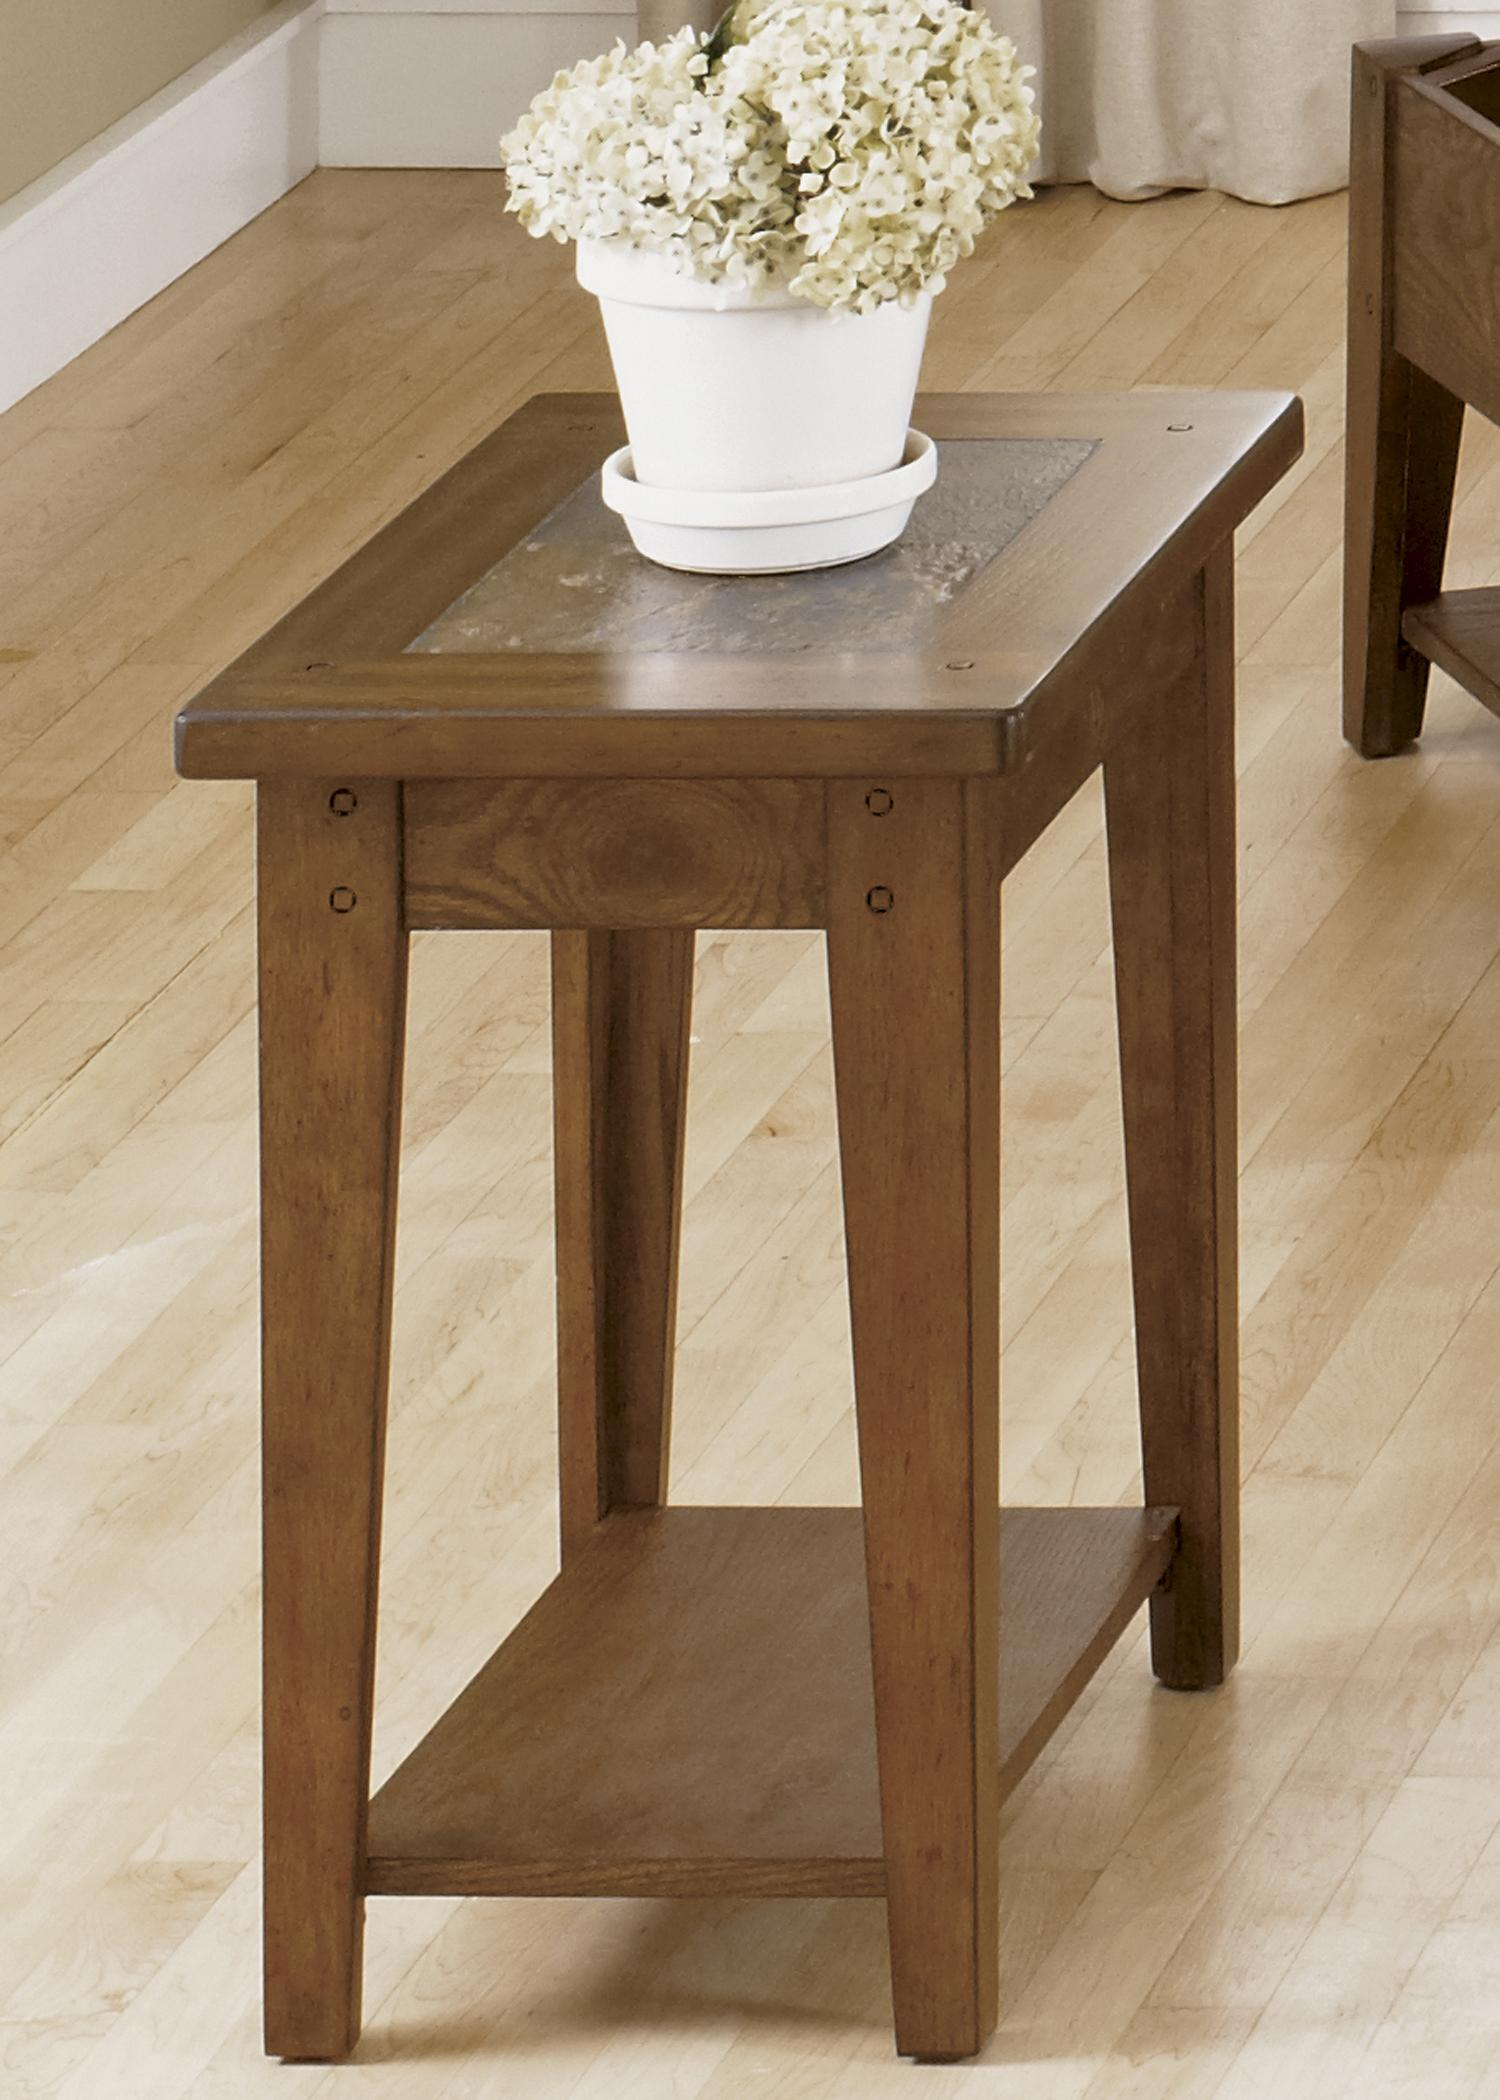 Chair Side Table Liberty Furniture Hearthstone 382 Ot1021 Chairside Table